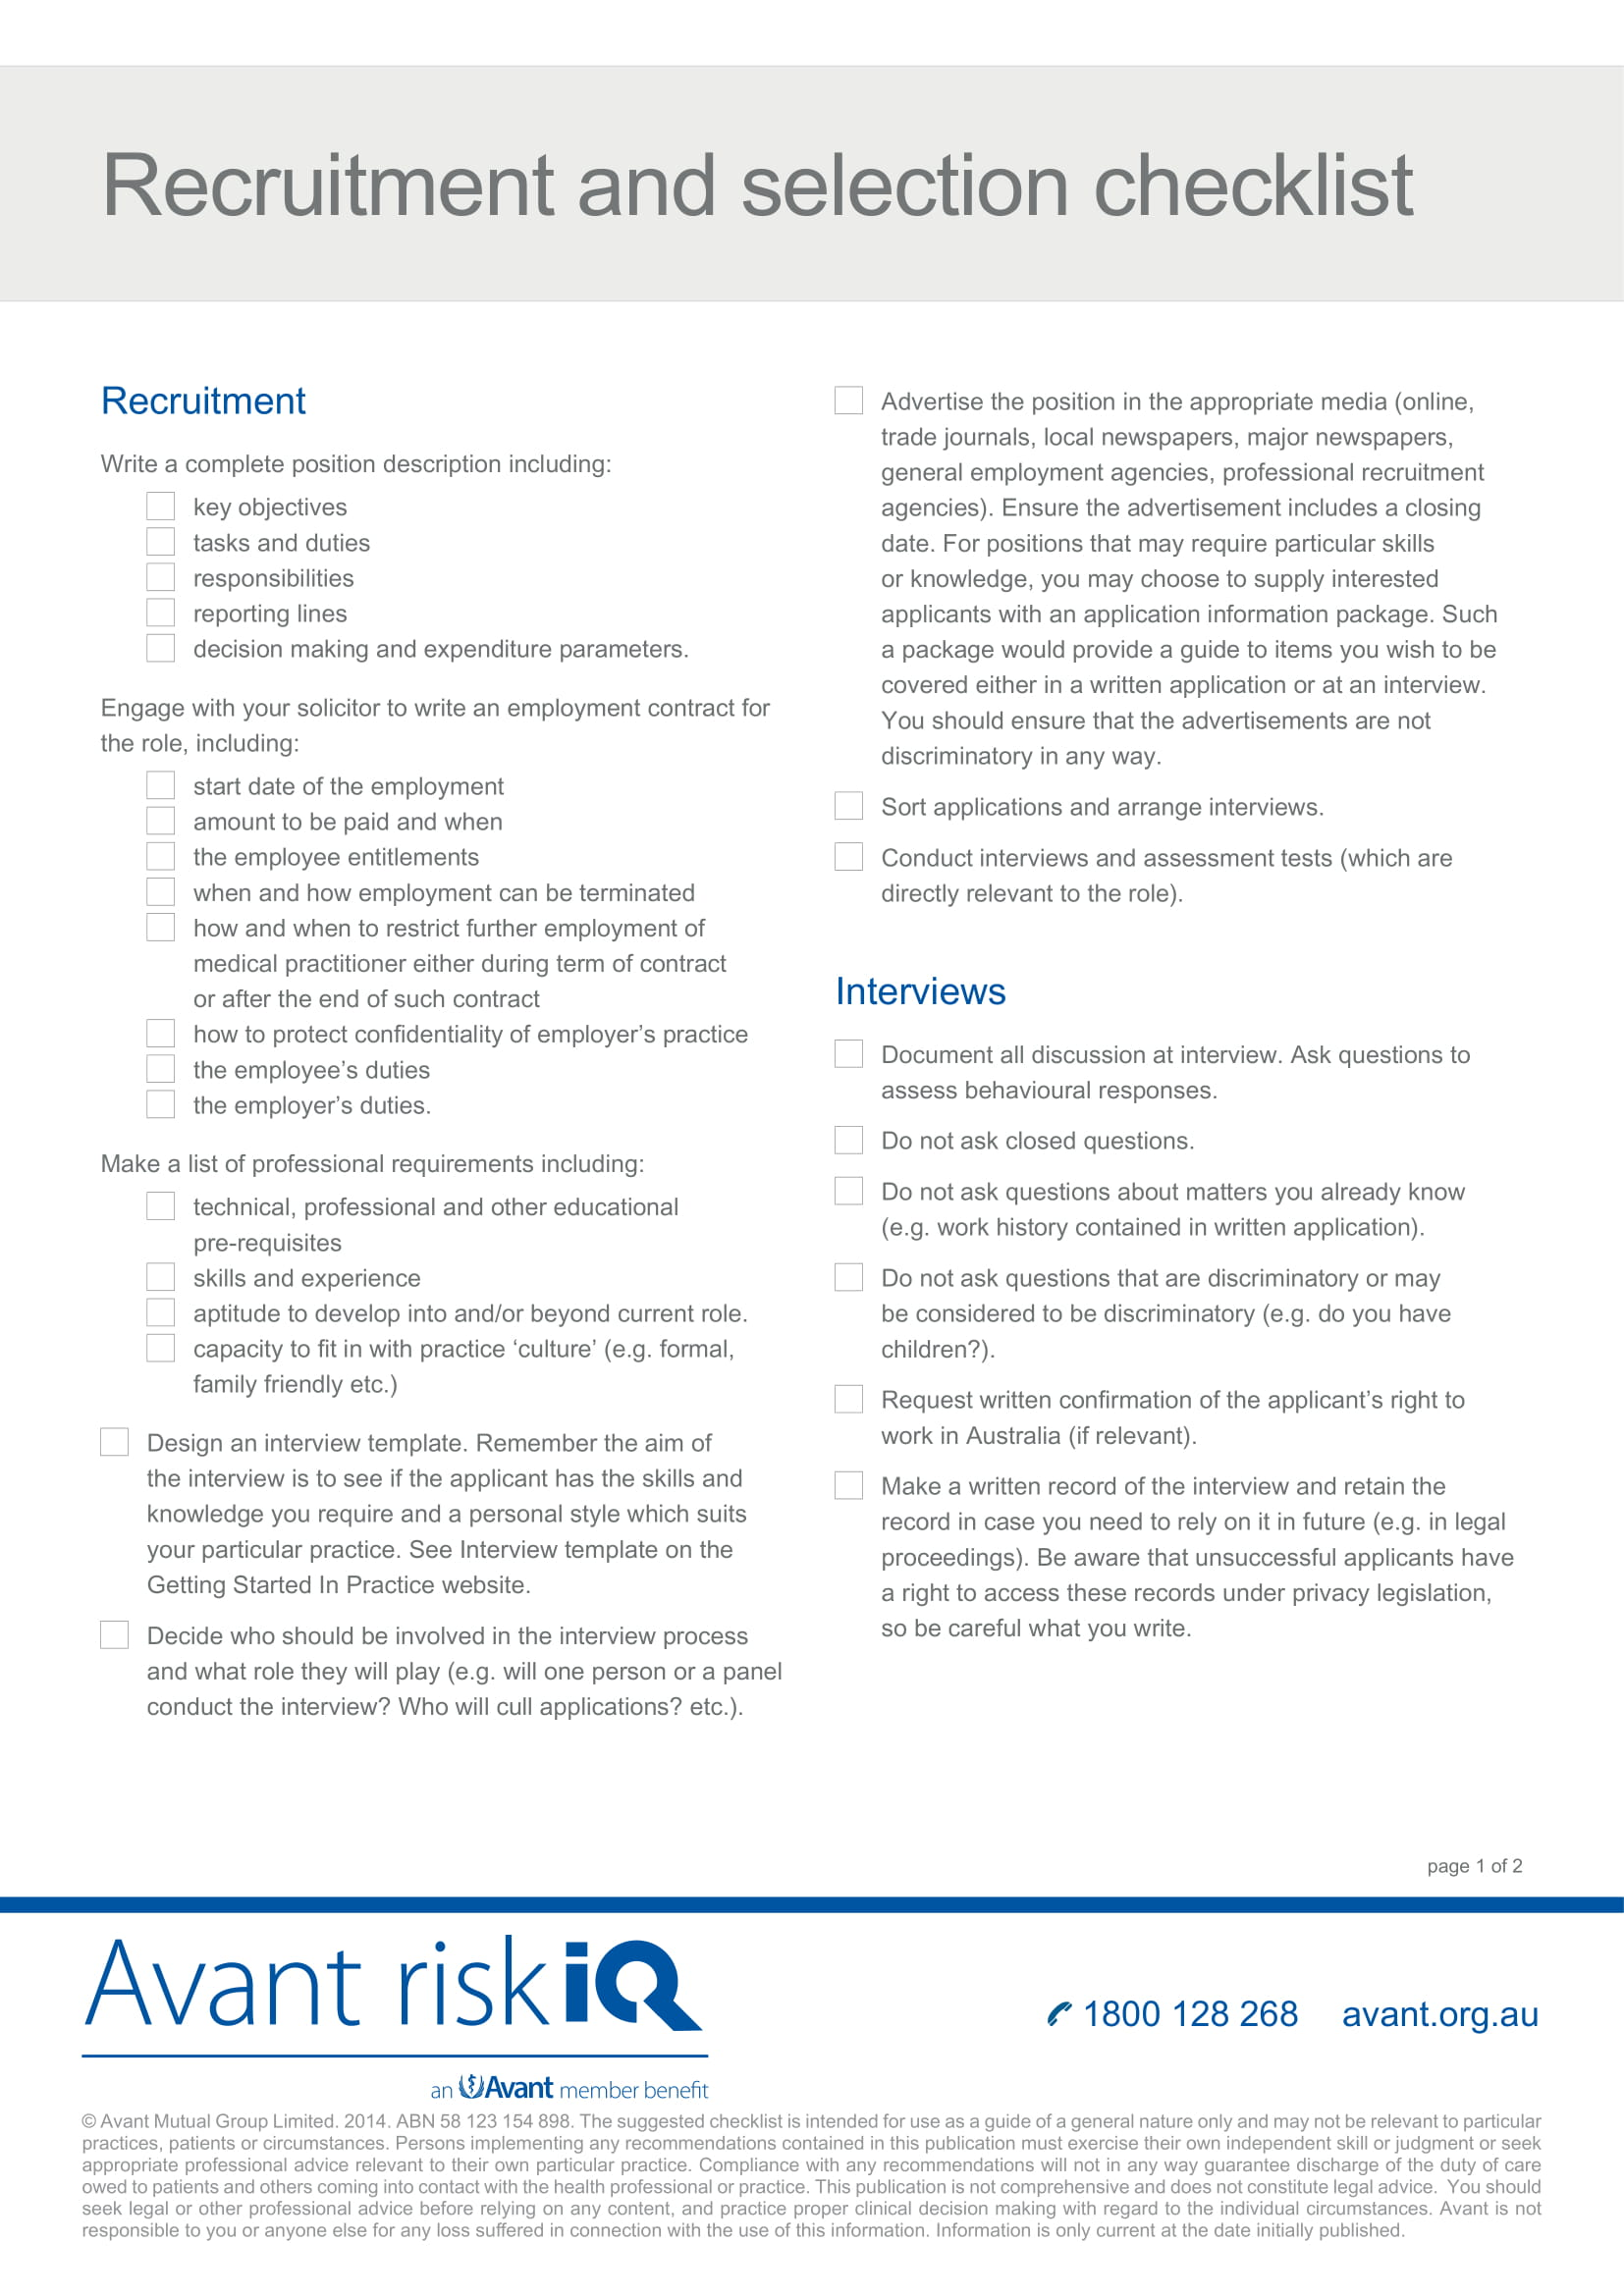 staff recruitment and selection hiring checklist